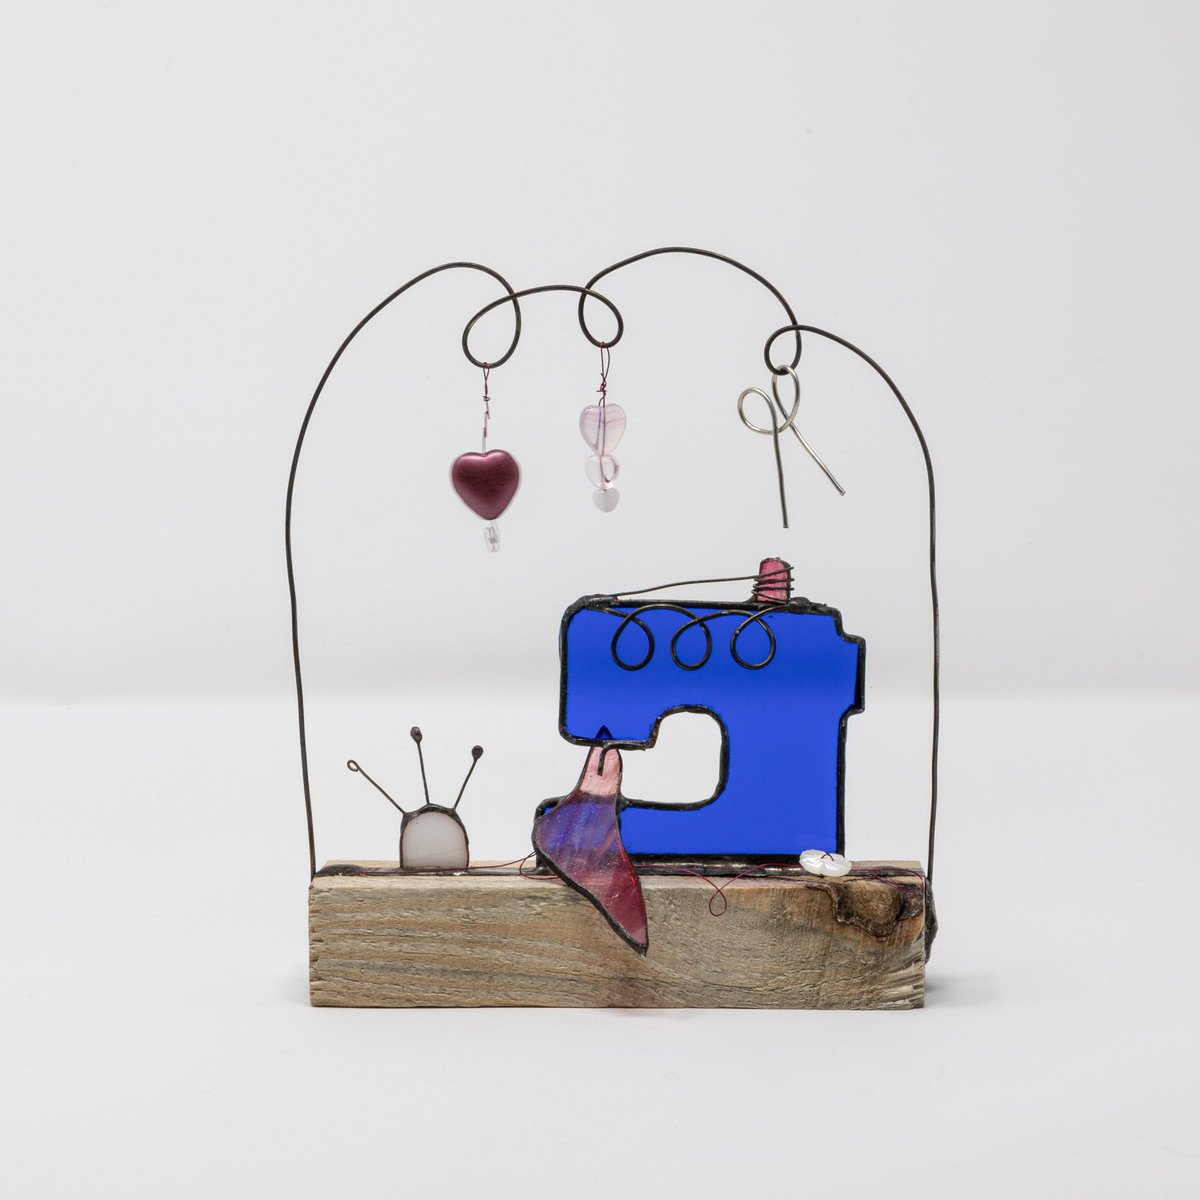 I was inspired to make this #stainedglass #vintage #sewingmachine to celebrate #stitchers and #sewing . #craft is so important and especially in #lockdown #contemporaryart #contemporaryglass. #KeepCraftingcarryon<br>http://pic.twitter.com/nWZQZUJI8f